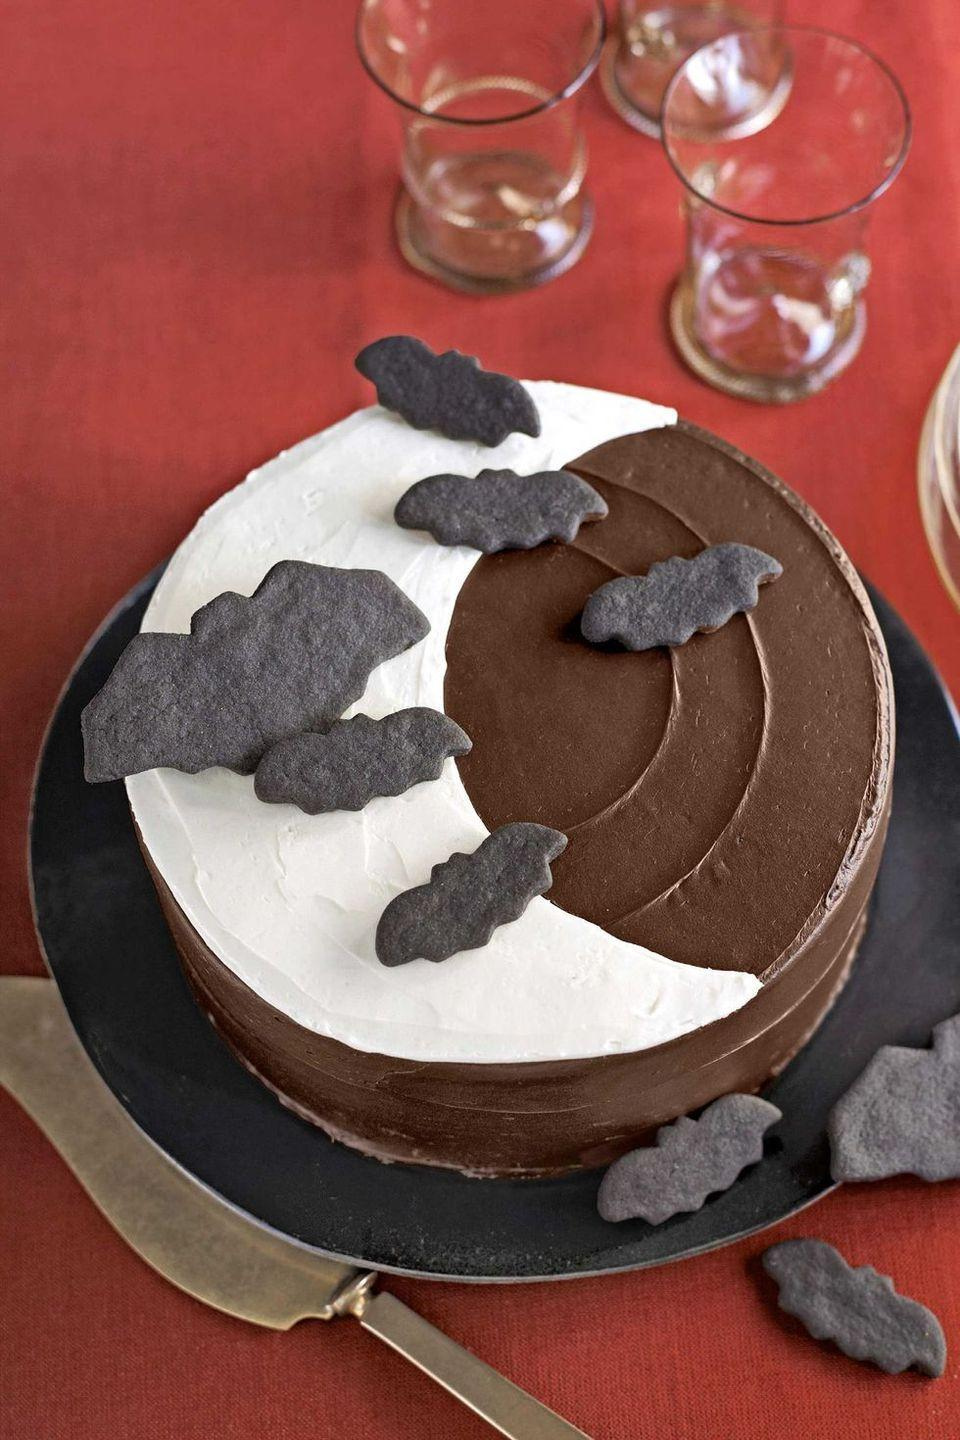 """<p>Elevate your basic chocolate cake with these simple decorations that will turn your year-round dessert into a Halloween masterpiece.</p><p><em><a href=""""https://www.womansday.com/food-recipes/food-drinks/recipes/a26386/over-the-moon-cake-recipe/"""" rel=""""nofollow noopener"""" target=""""_blank"""" data-ylk=""""slk:Get the recipe for Over the Moon Cake"""" class=""""link rapid-noclick-resp"""">Get the recipe for Over the Moon Cake</a>.</em></p>"""